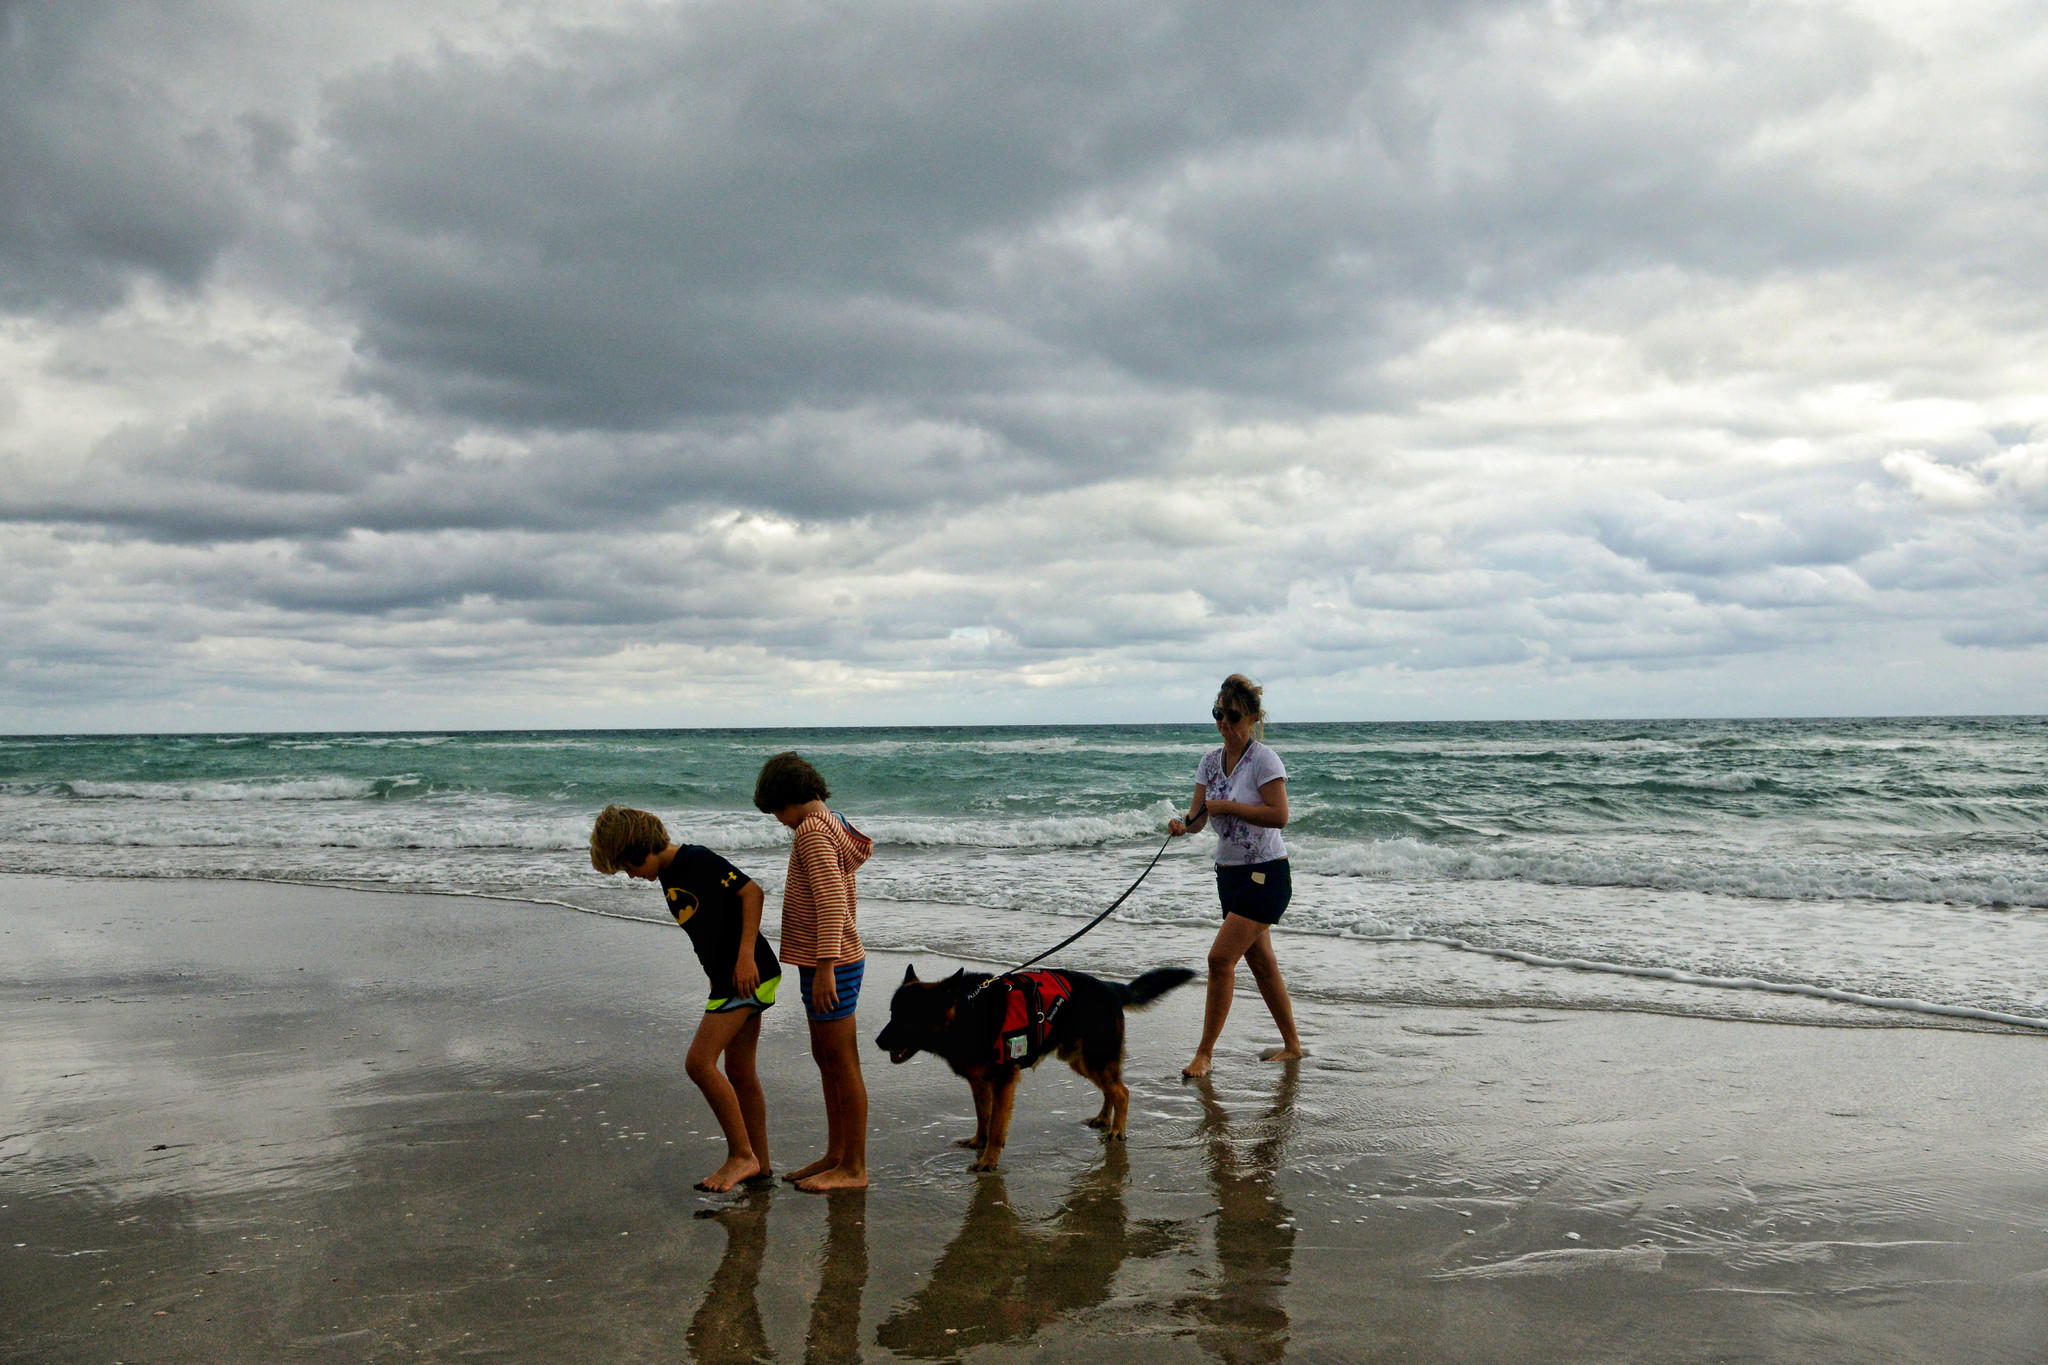 Pali, left, and Kenko Filban enjoy Hallandale beach with their mother, Susie Filban, and her service dog despite the wind and dark rain clouds overhead Tuesday morning.